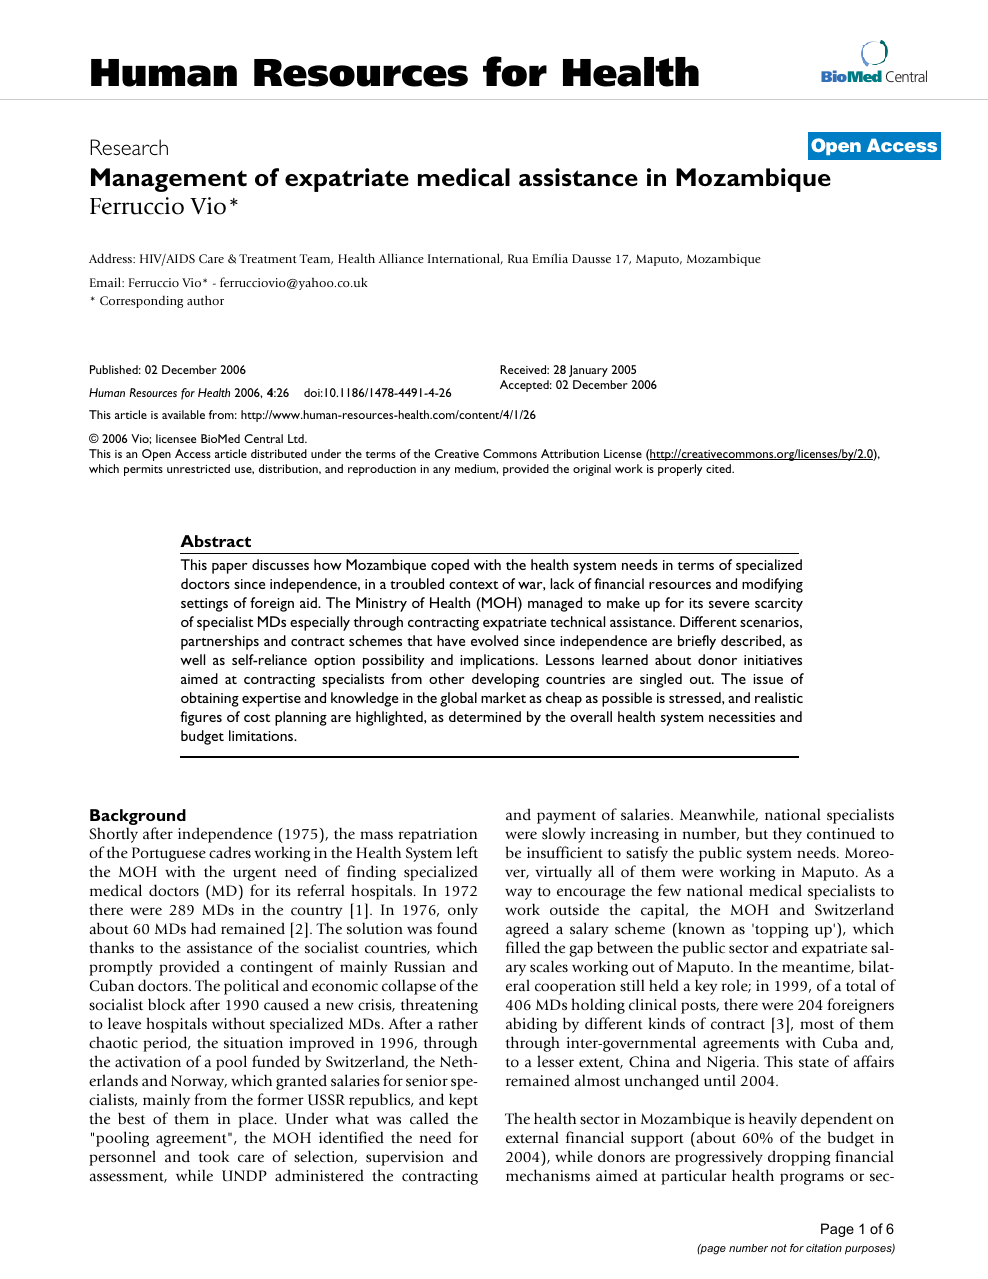 Management of expatriate medical assistance in Mozambique